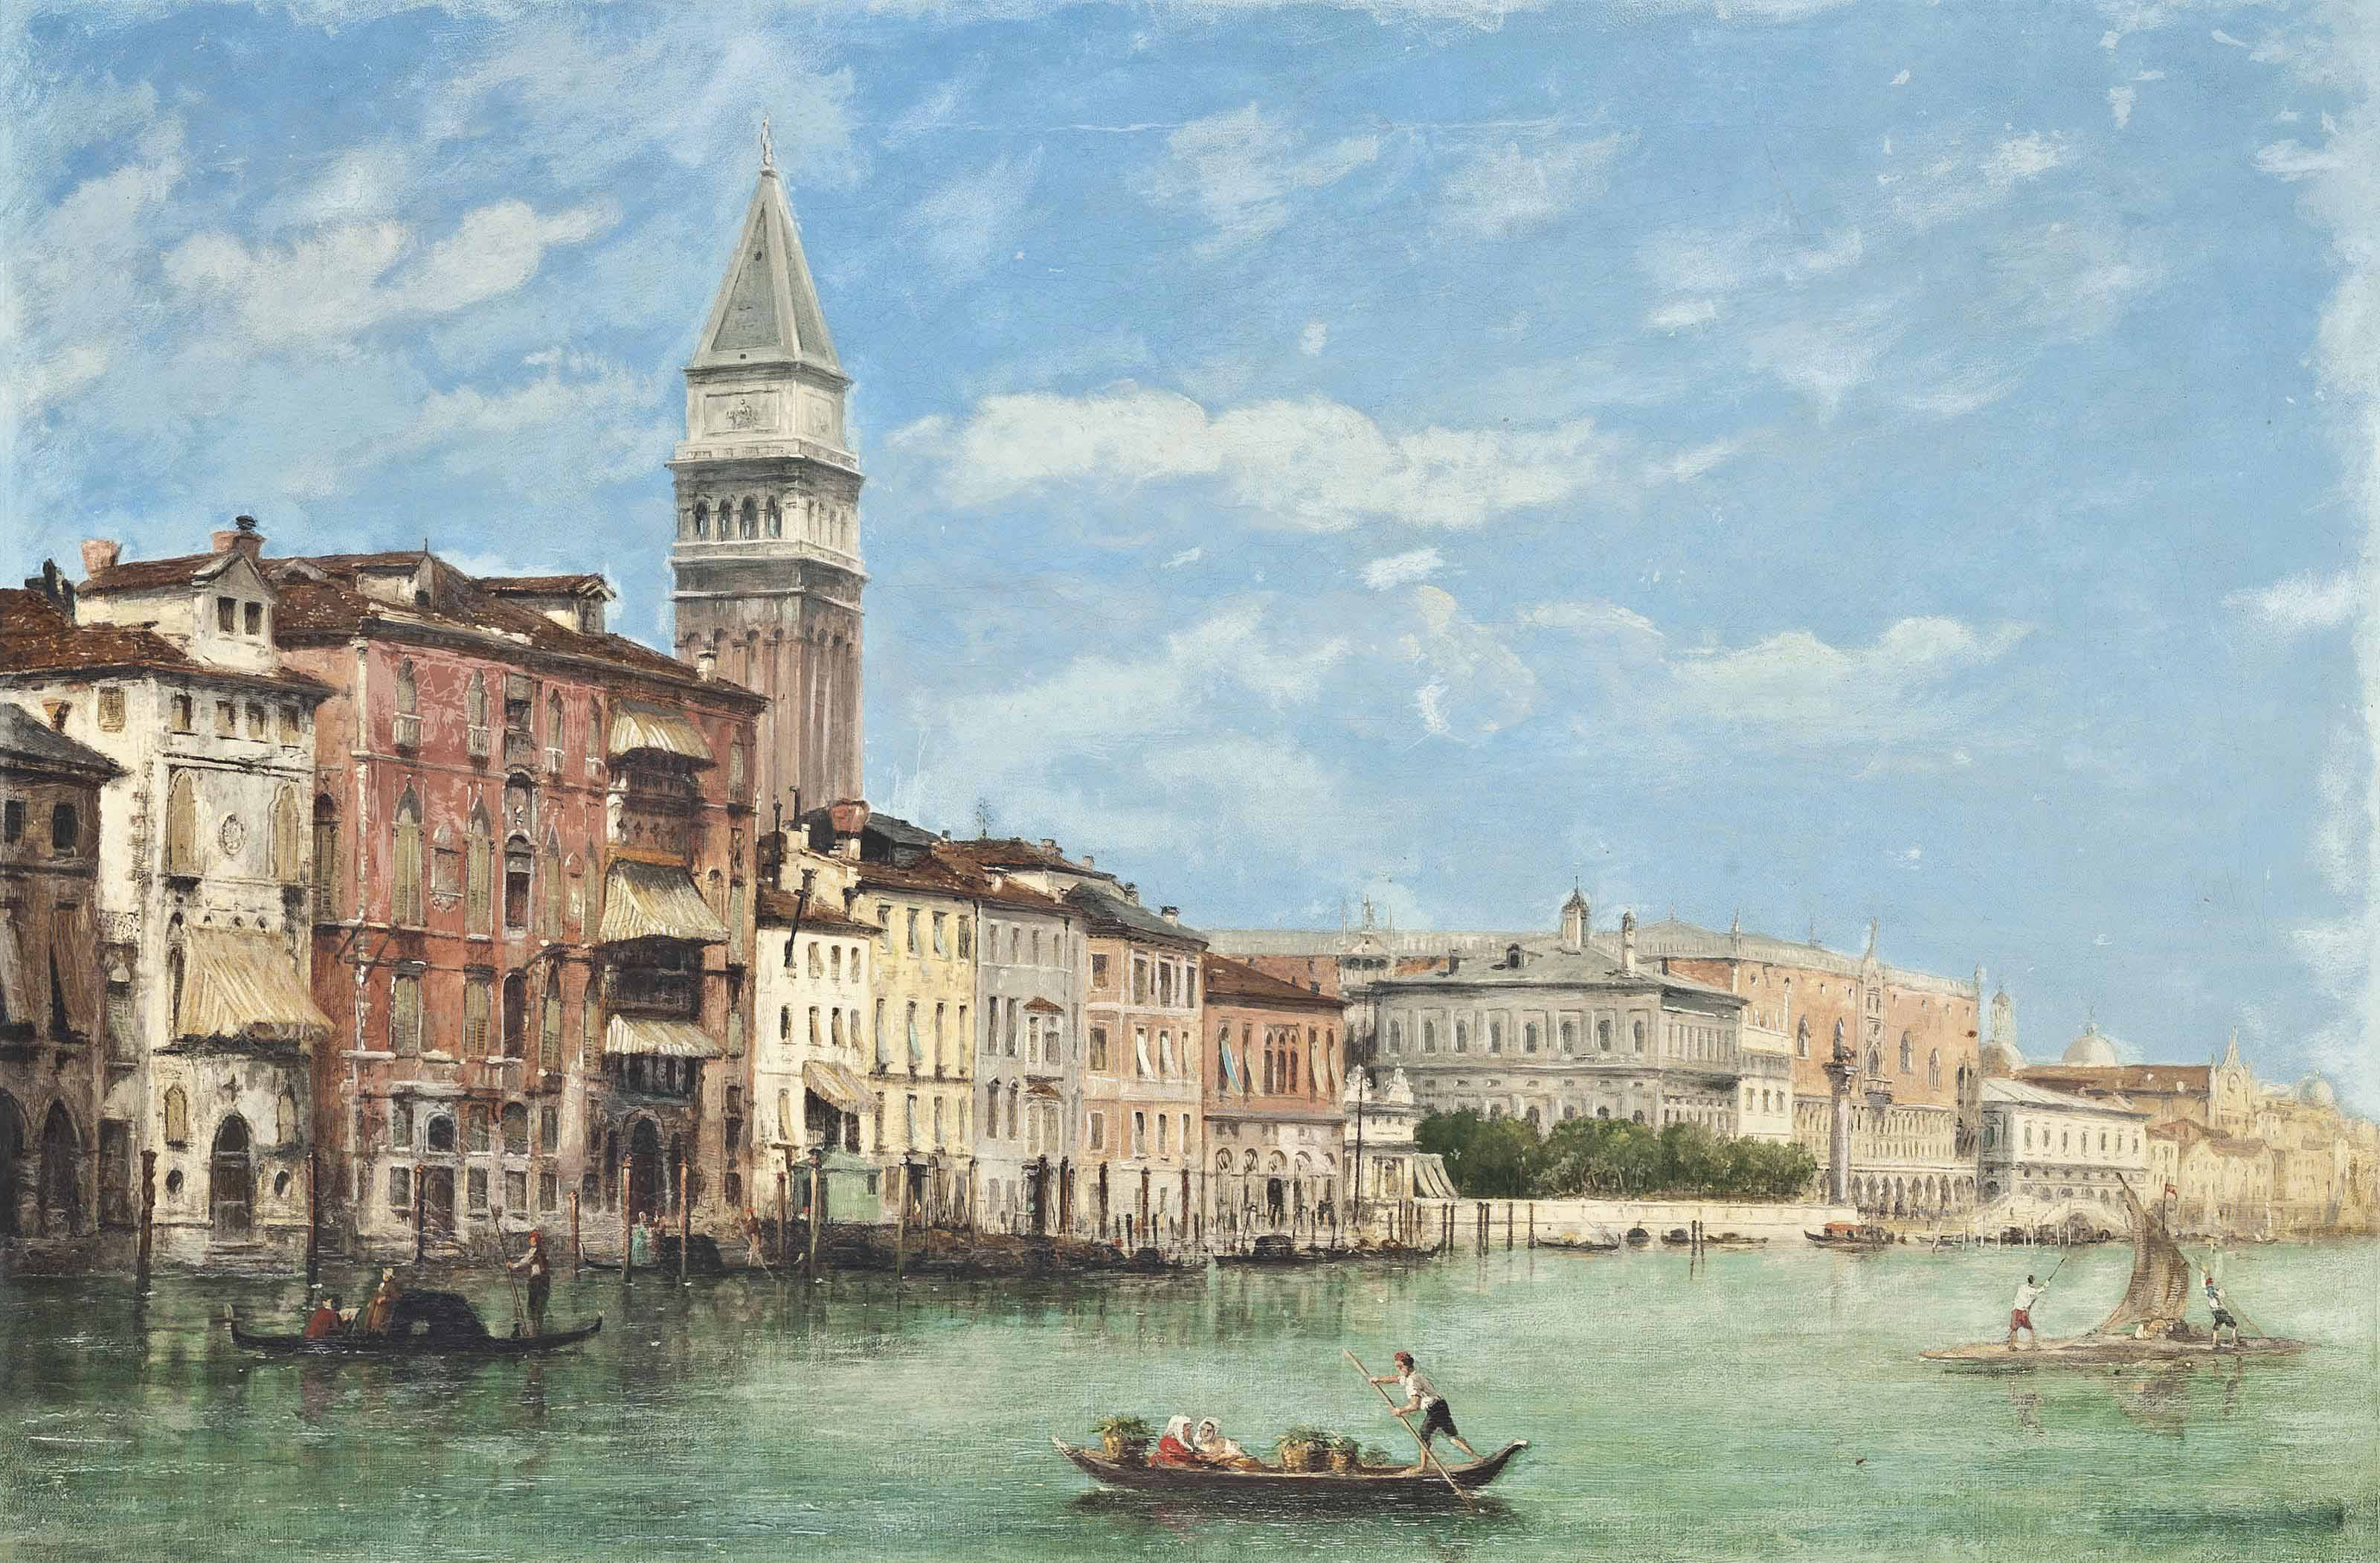 The Doge's Palace and the Campanile di San Marco, viewed from the Grand Canal